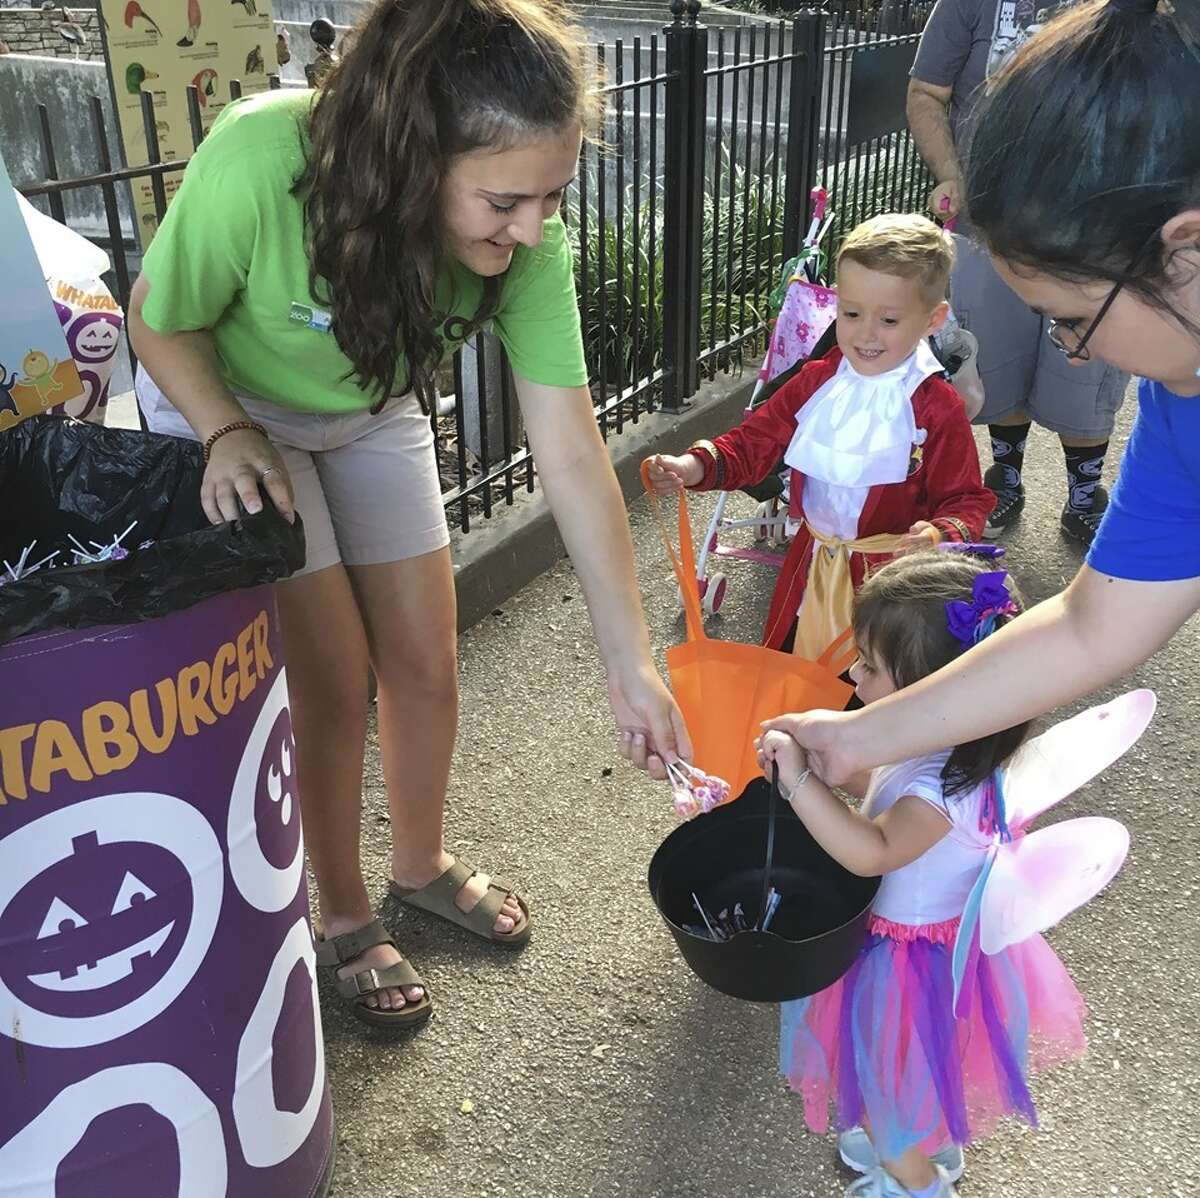 The San Antonio Zoo is offering families anopportunity to have some safe fun this Halloween, featuring four hours of trick-or-treating and a hay maze at its decked out non-spooky event.